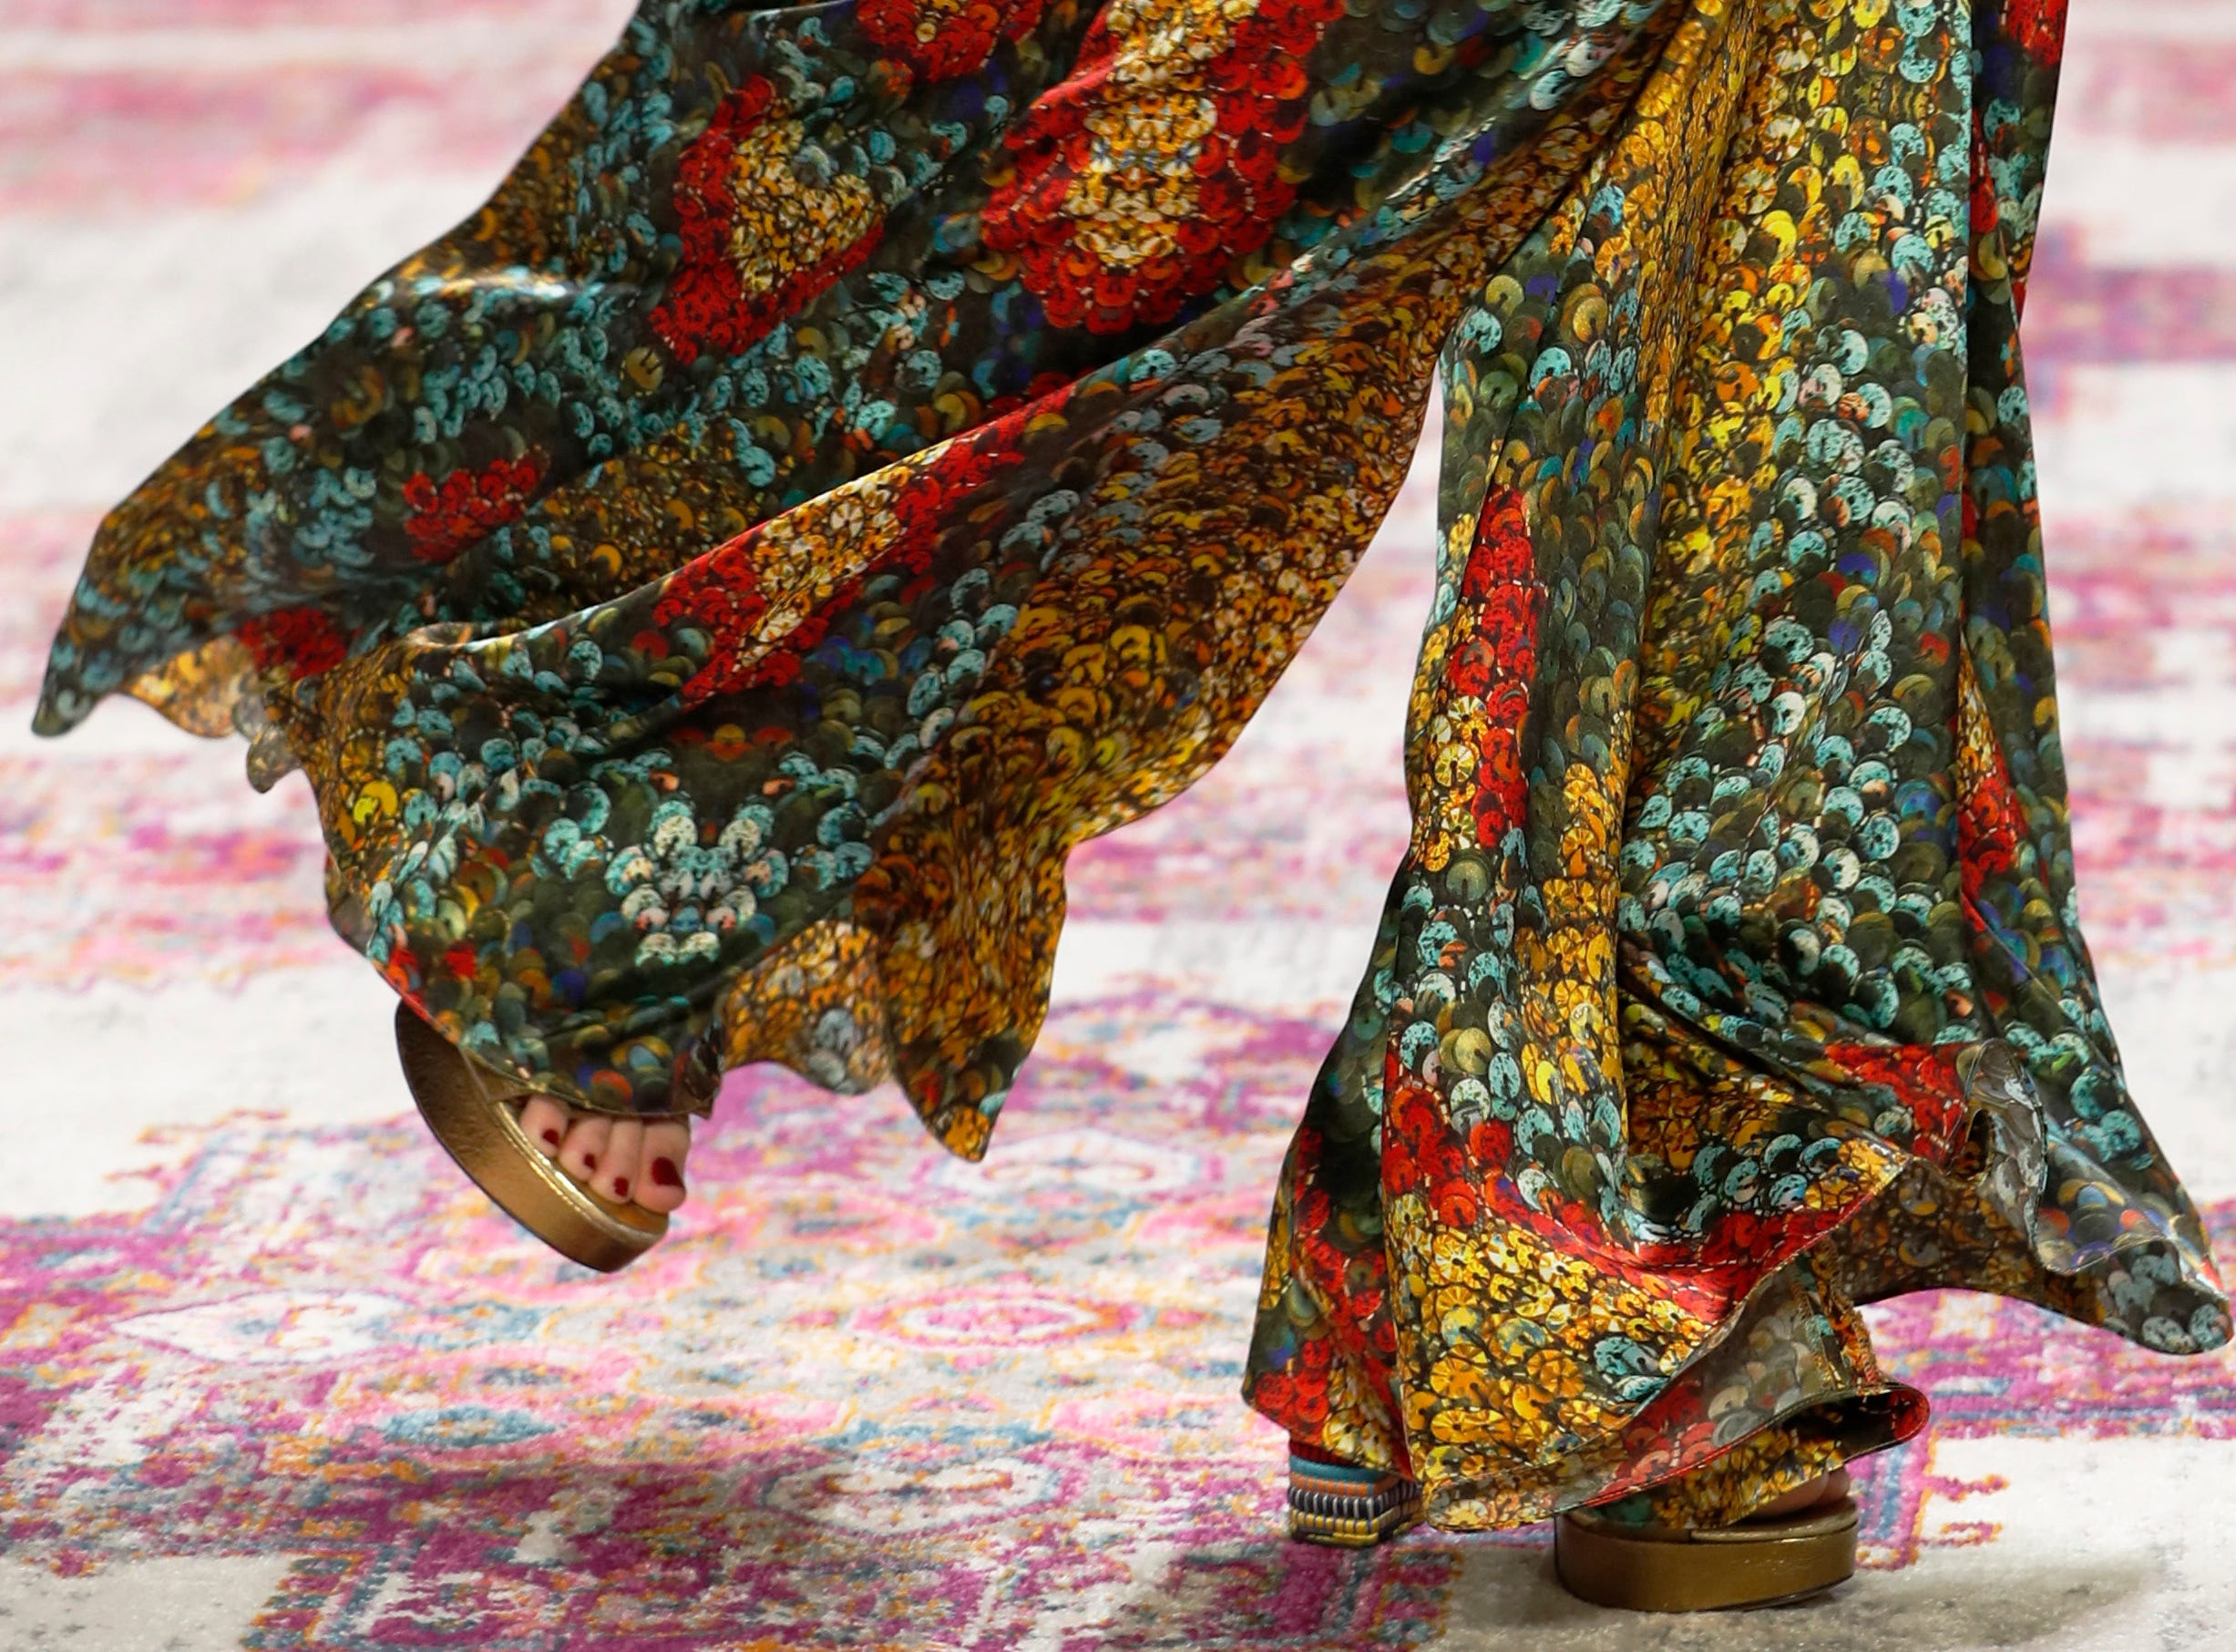 The latest fashion from Naeem Khan is modeled during New York Fashion Week, Tuesday, Feb. 12, 2019, in New York. (AP Photo/Kathy Willens) ORG XMIT: NYKW122